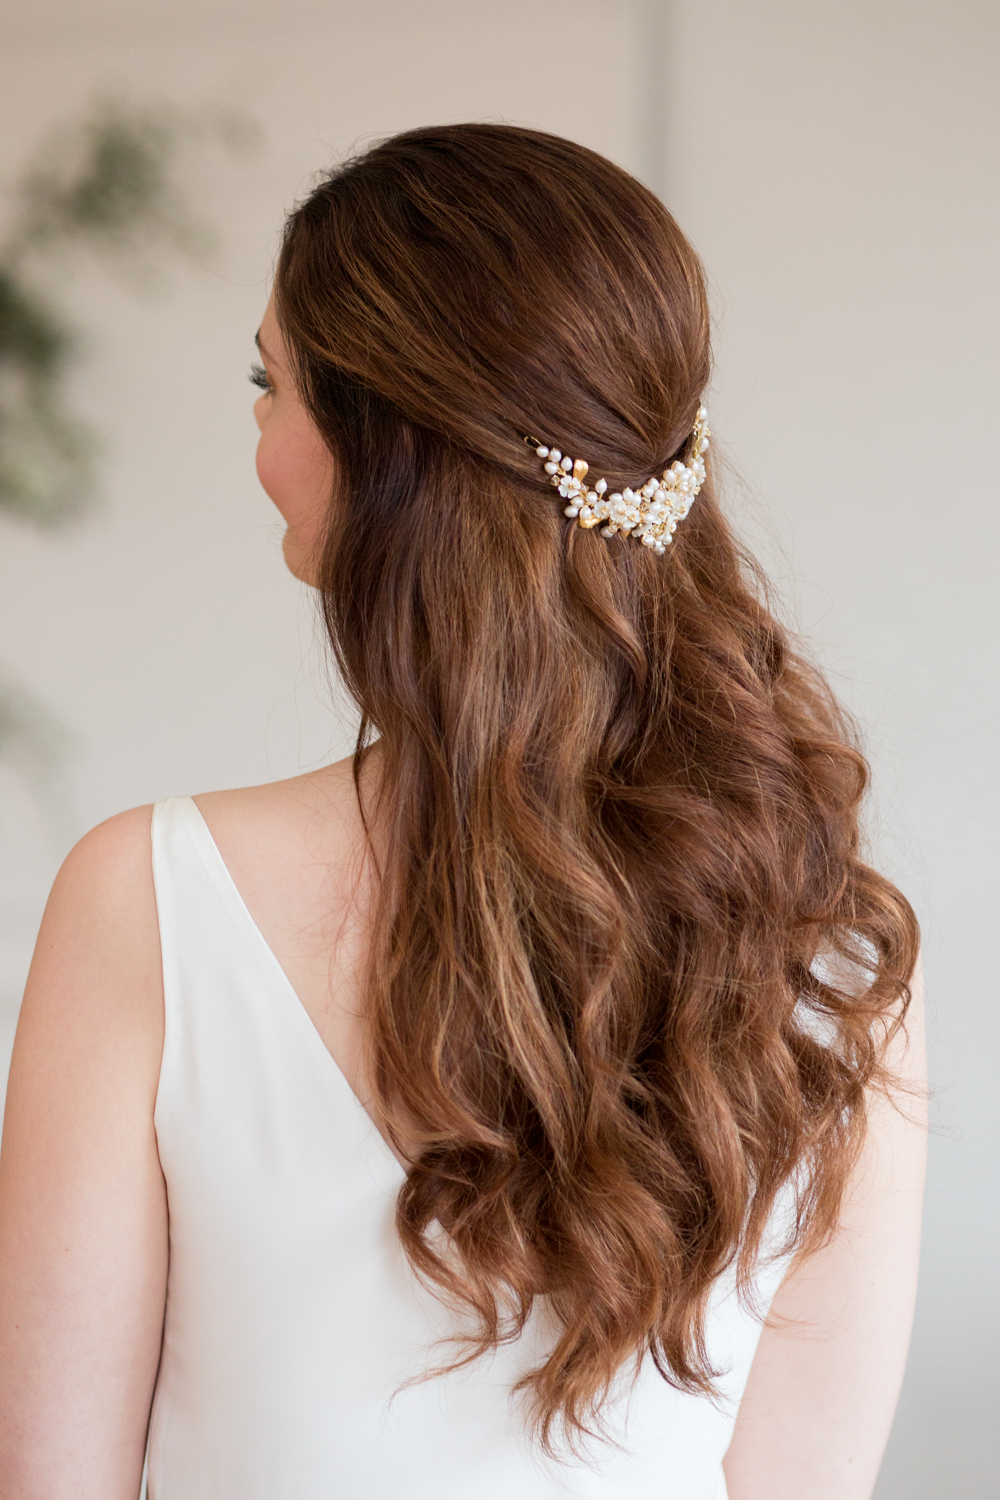 The Timeless Stylist - Elegant Bridal Hair